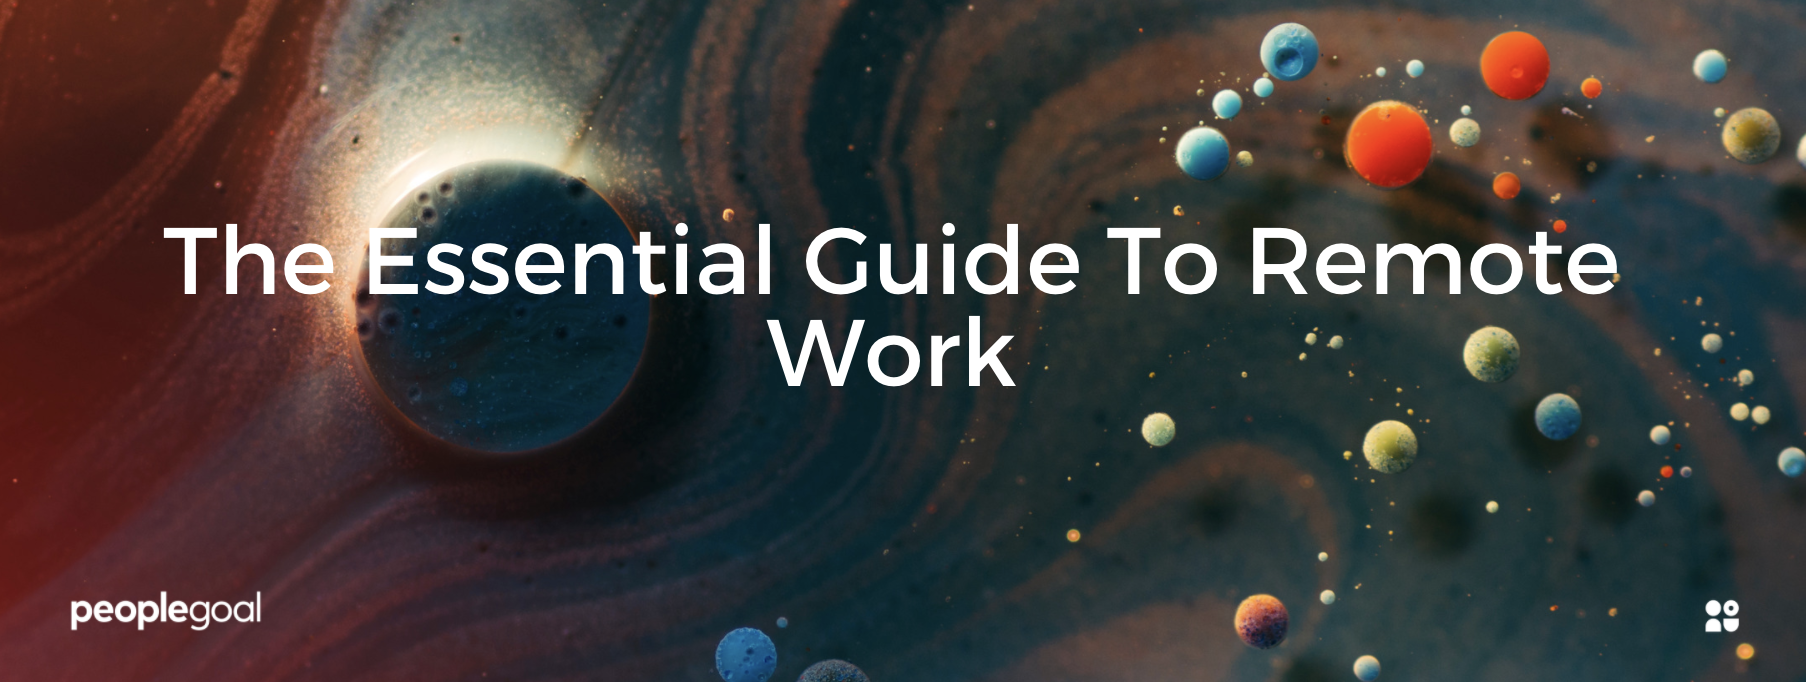 Our remote work guide explains all aspects of remote work and highlights processes that can support the workforce and enable employees to do their best work.